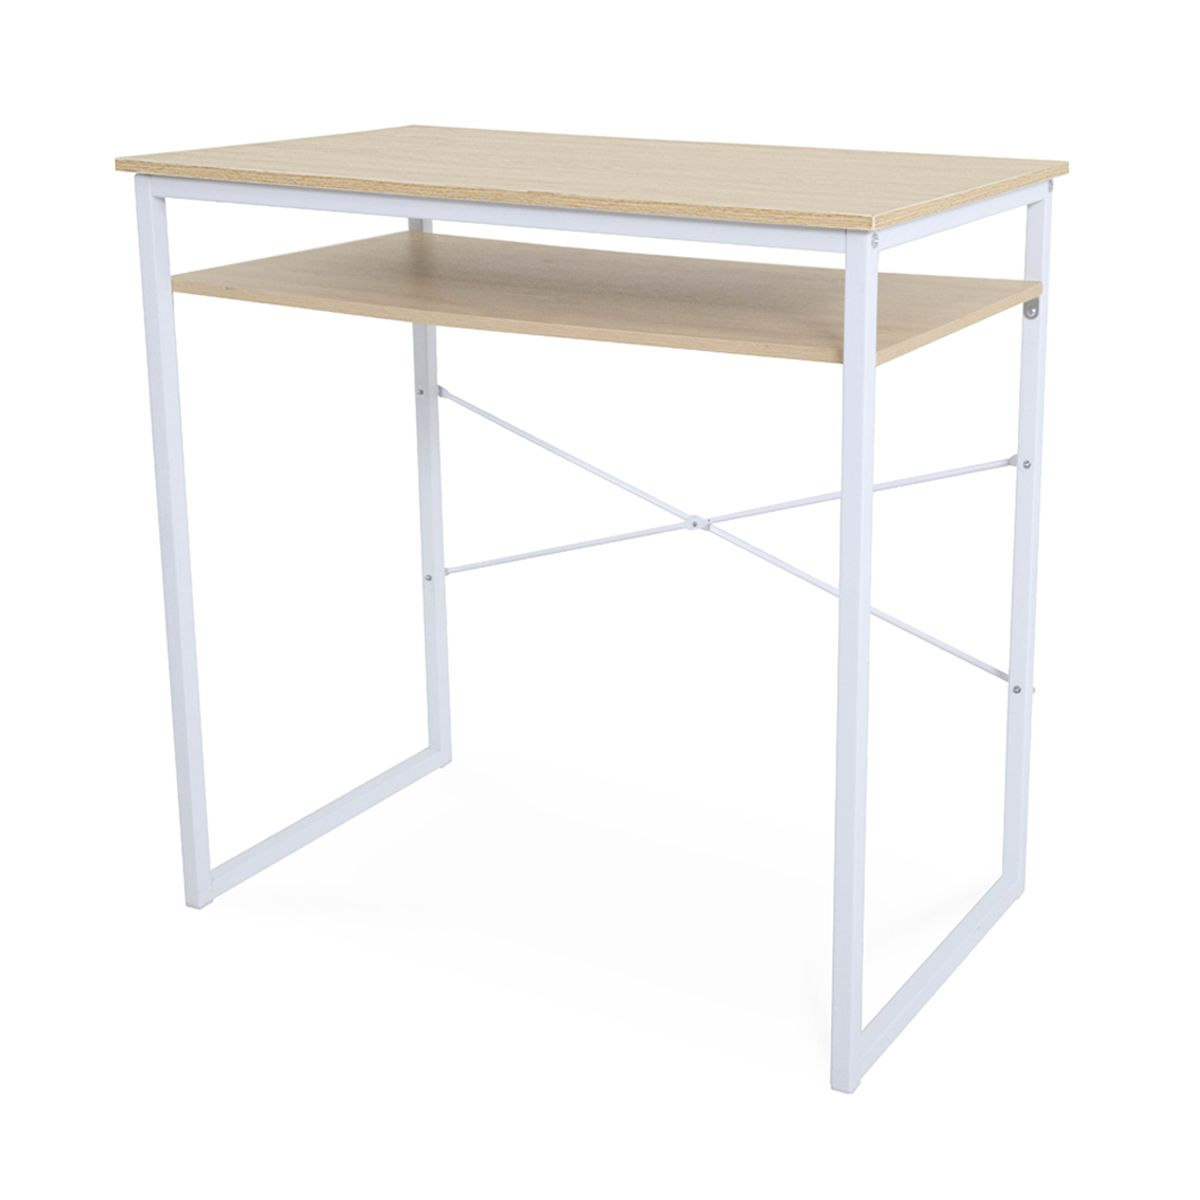 Scandi Student Desk Kmart Student Desks Kmart Desk Desk With Drawers